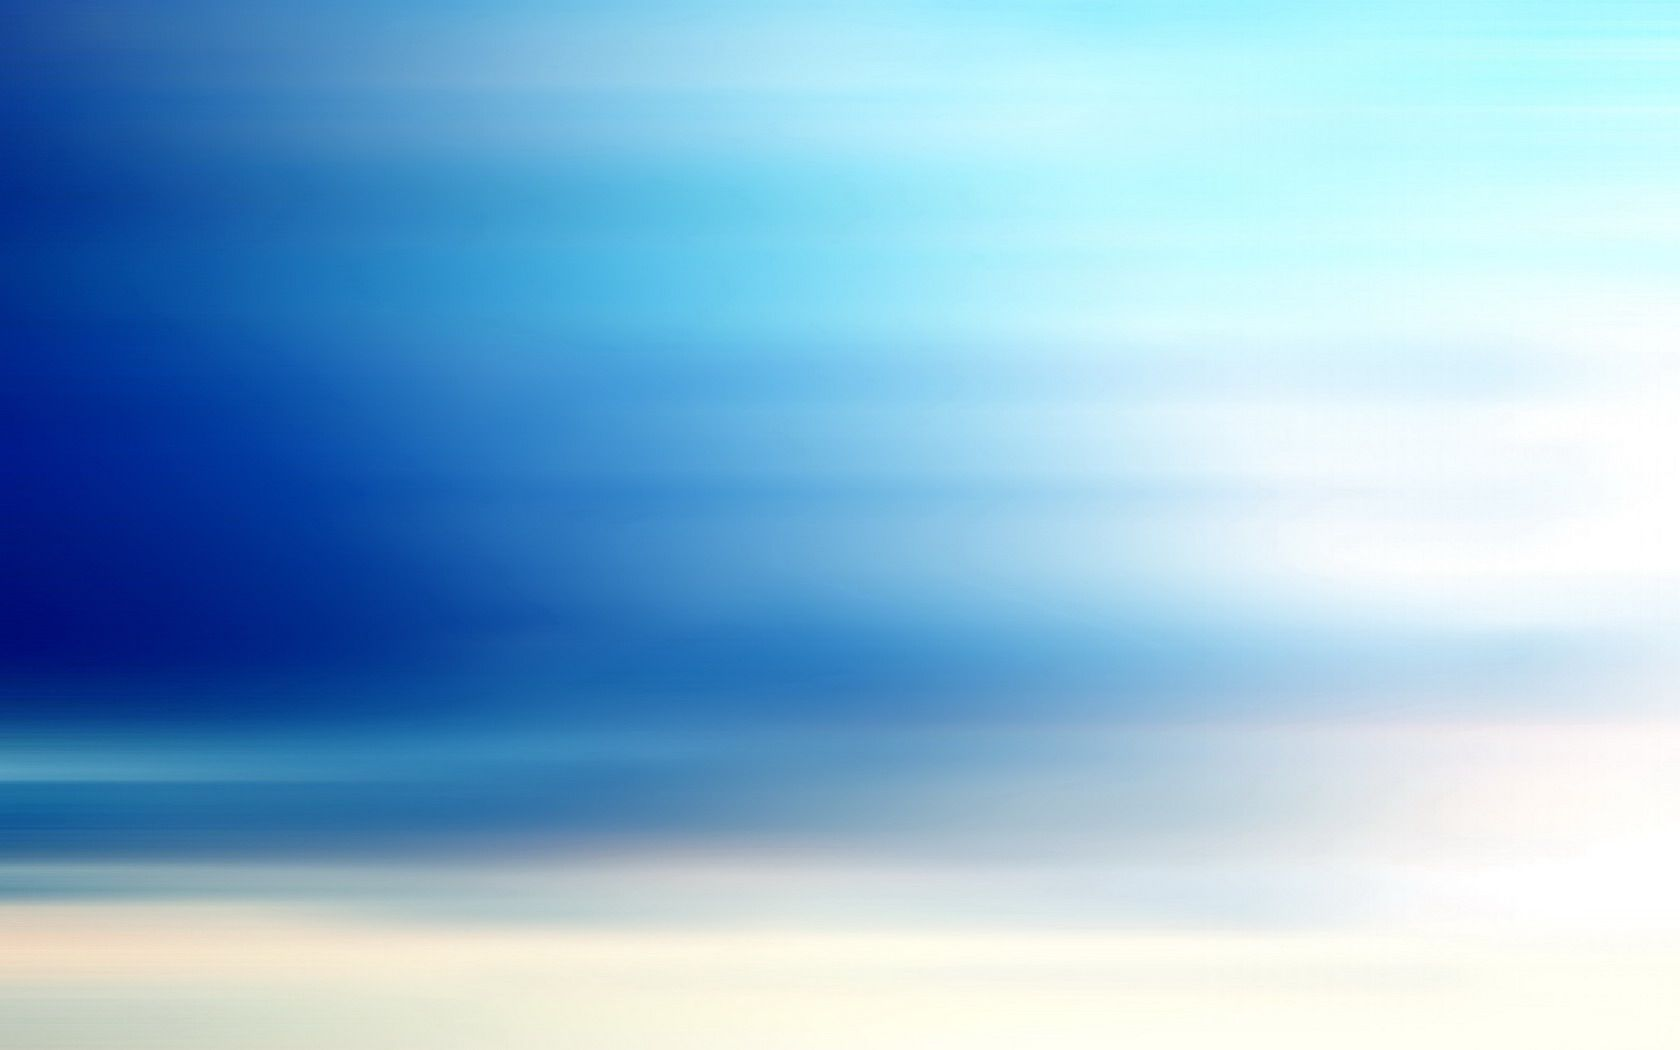 Blue And White Wallpapers Wallpaper